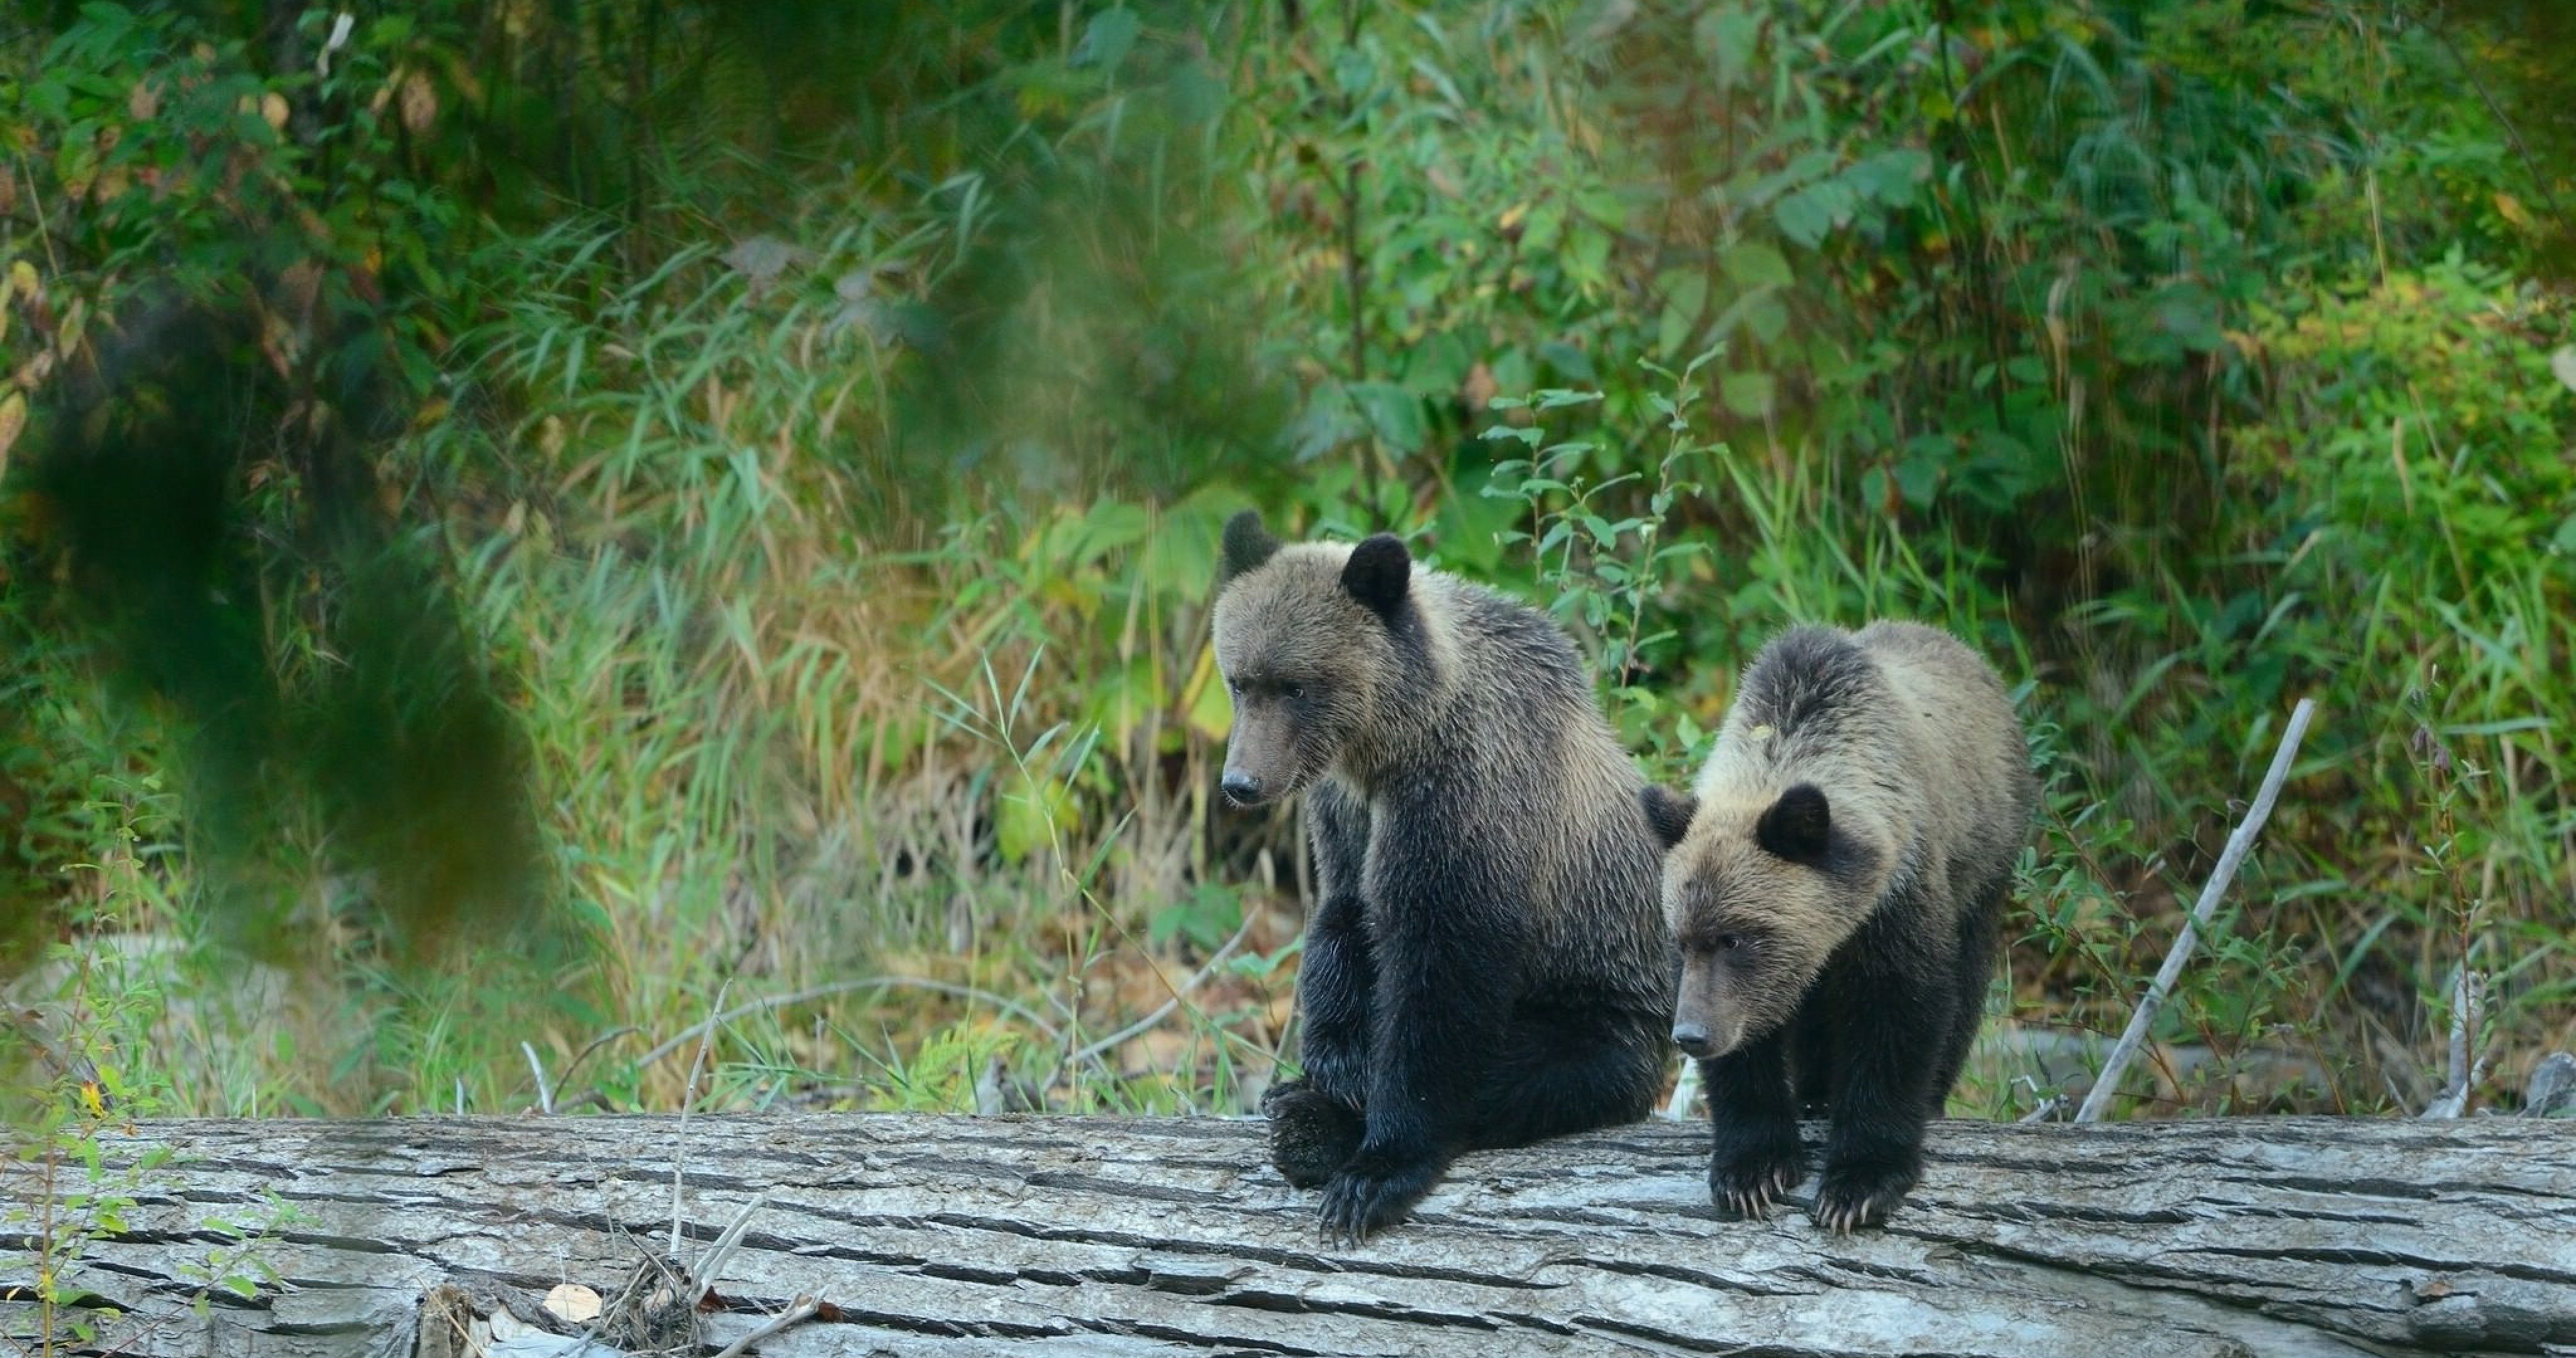 two grizzly bears 4k ultra hd wallpaper Cubs wallpaper